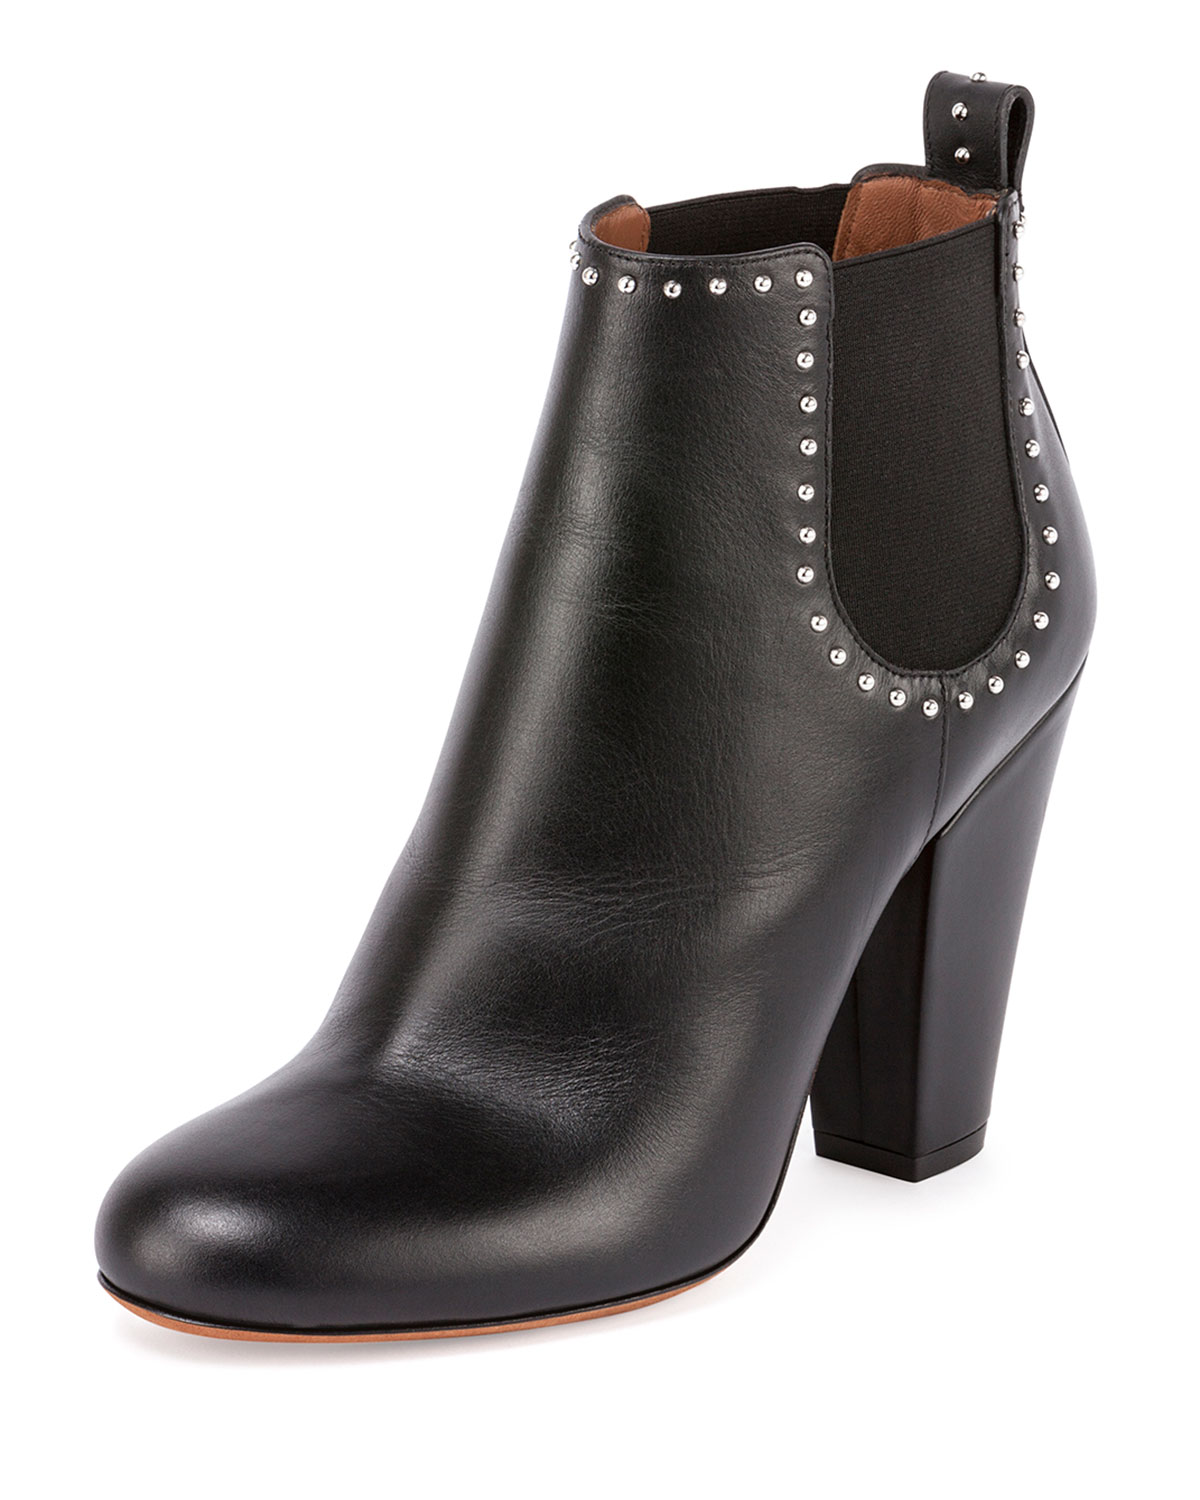 Givenchy Stretch-Inset Studded Leather Ankle Bootie